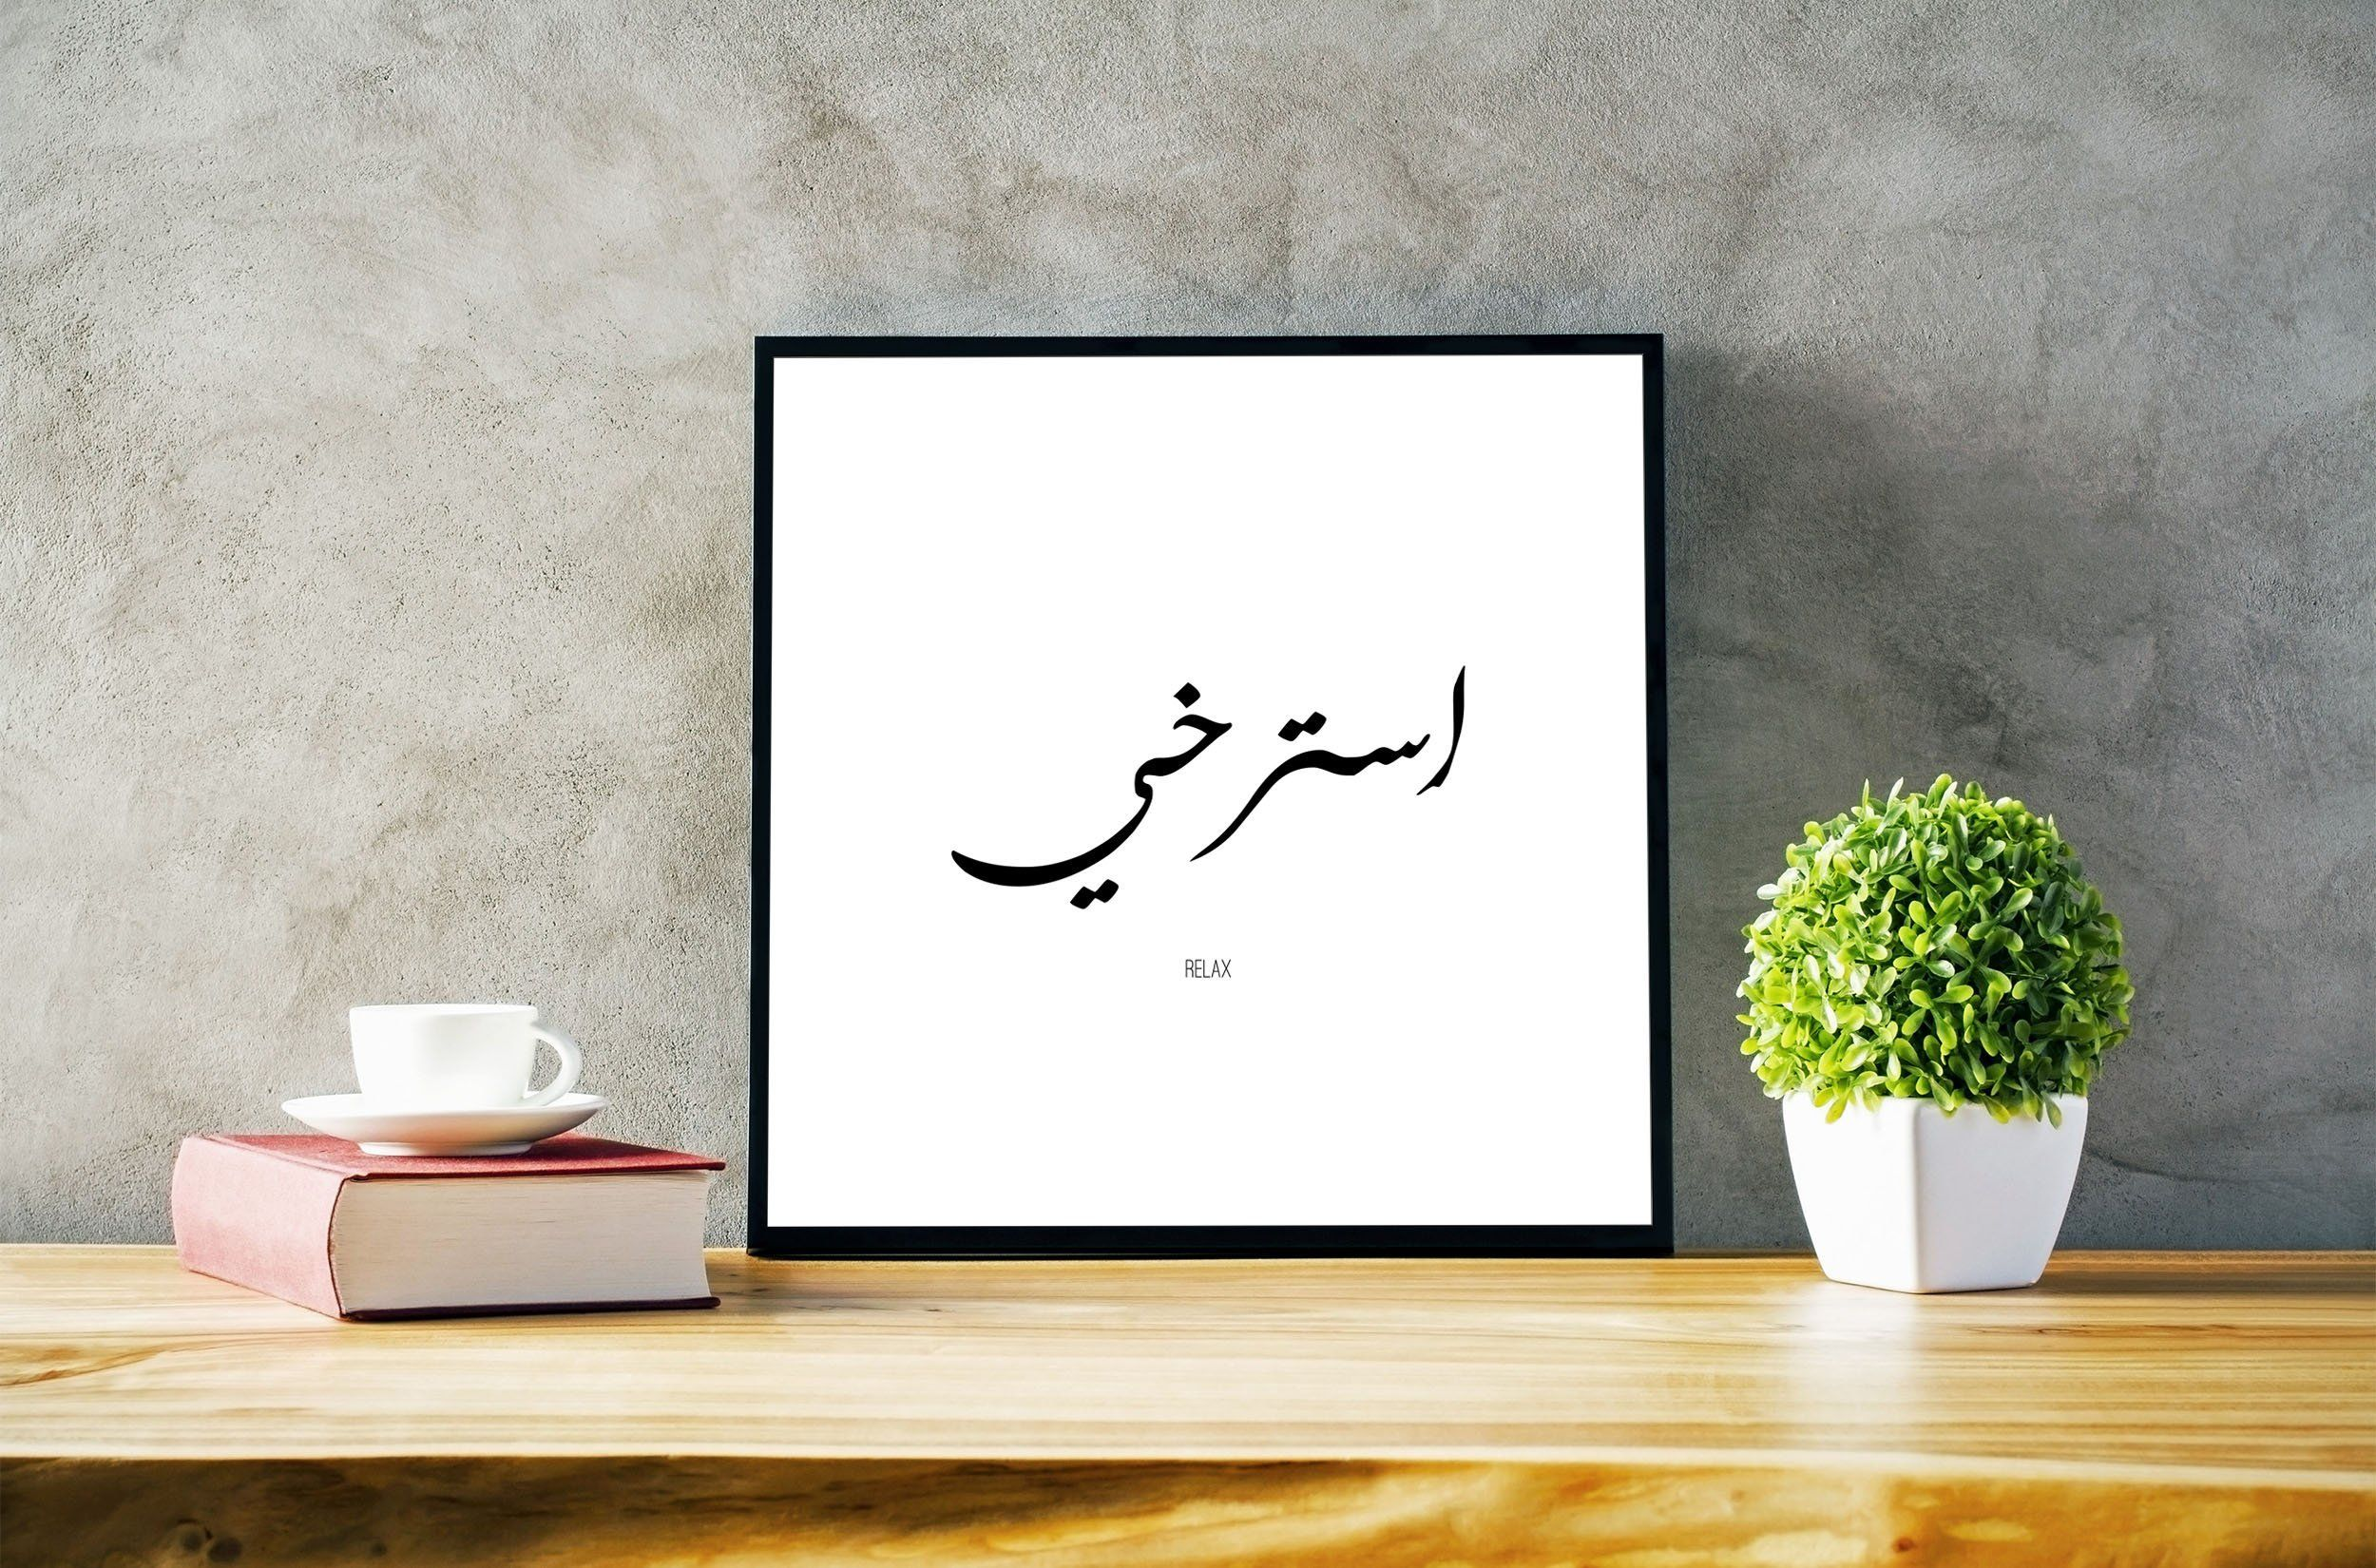 Relax arabic calligraphy inspirational quotes wall art